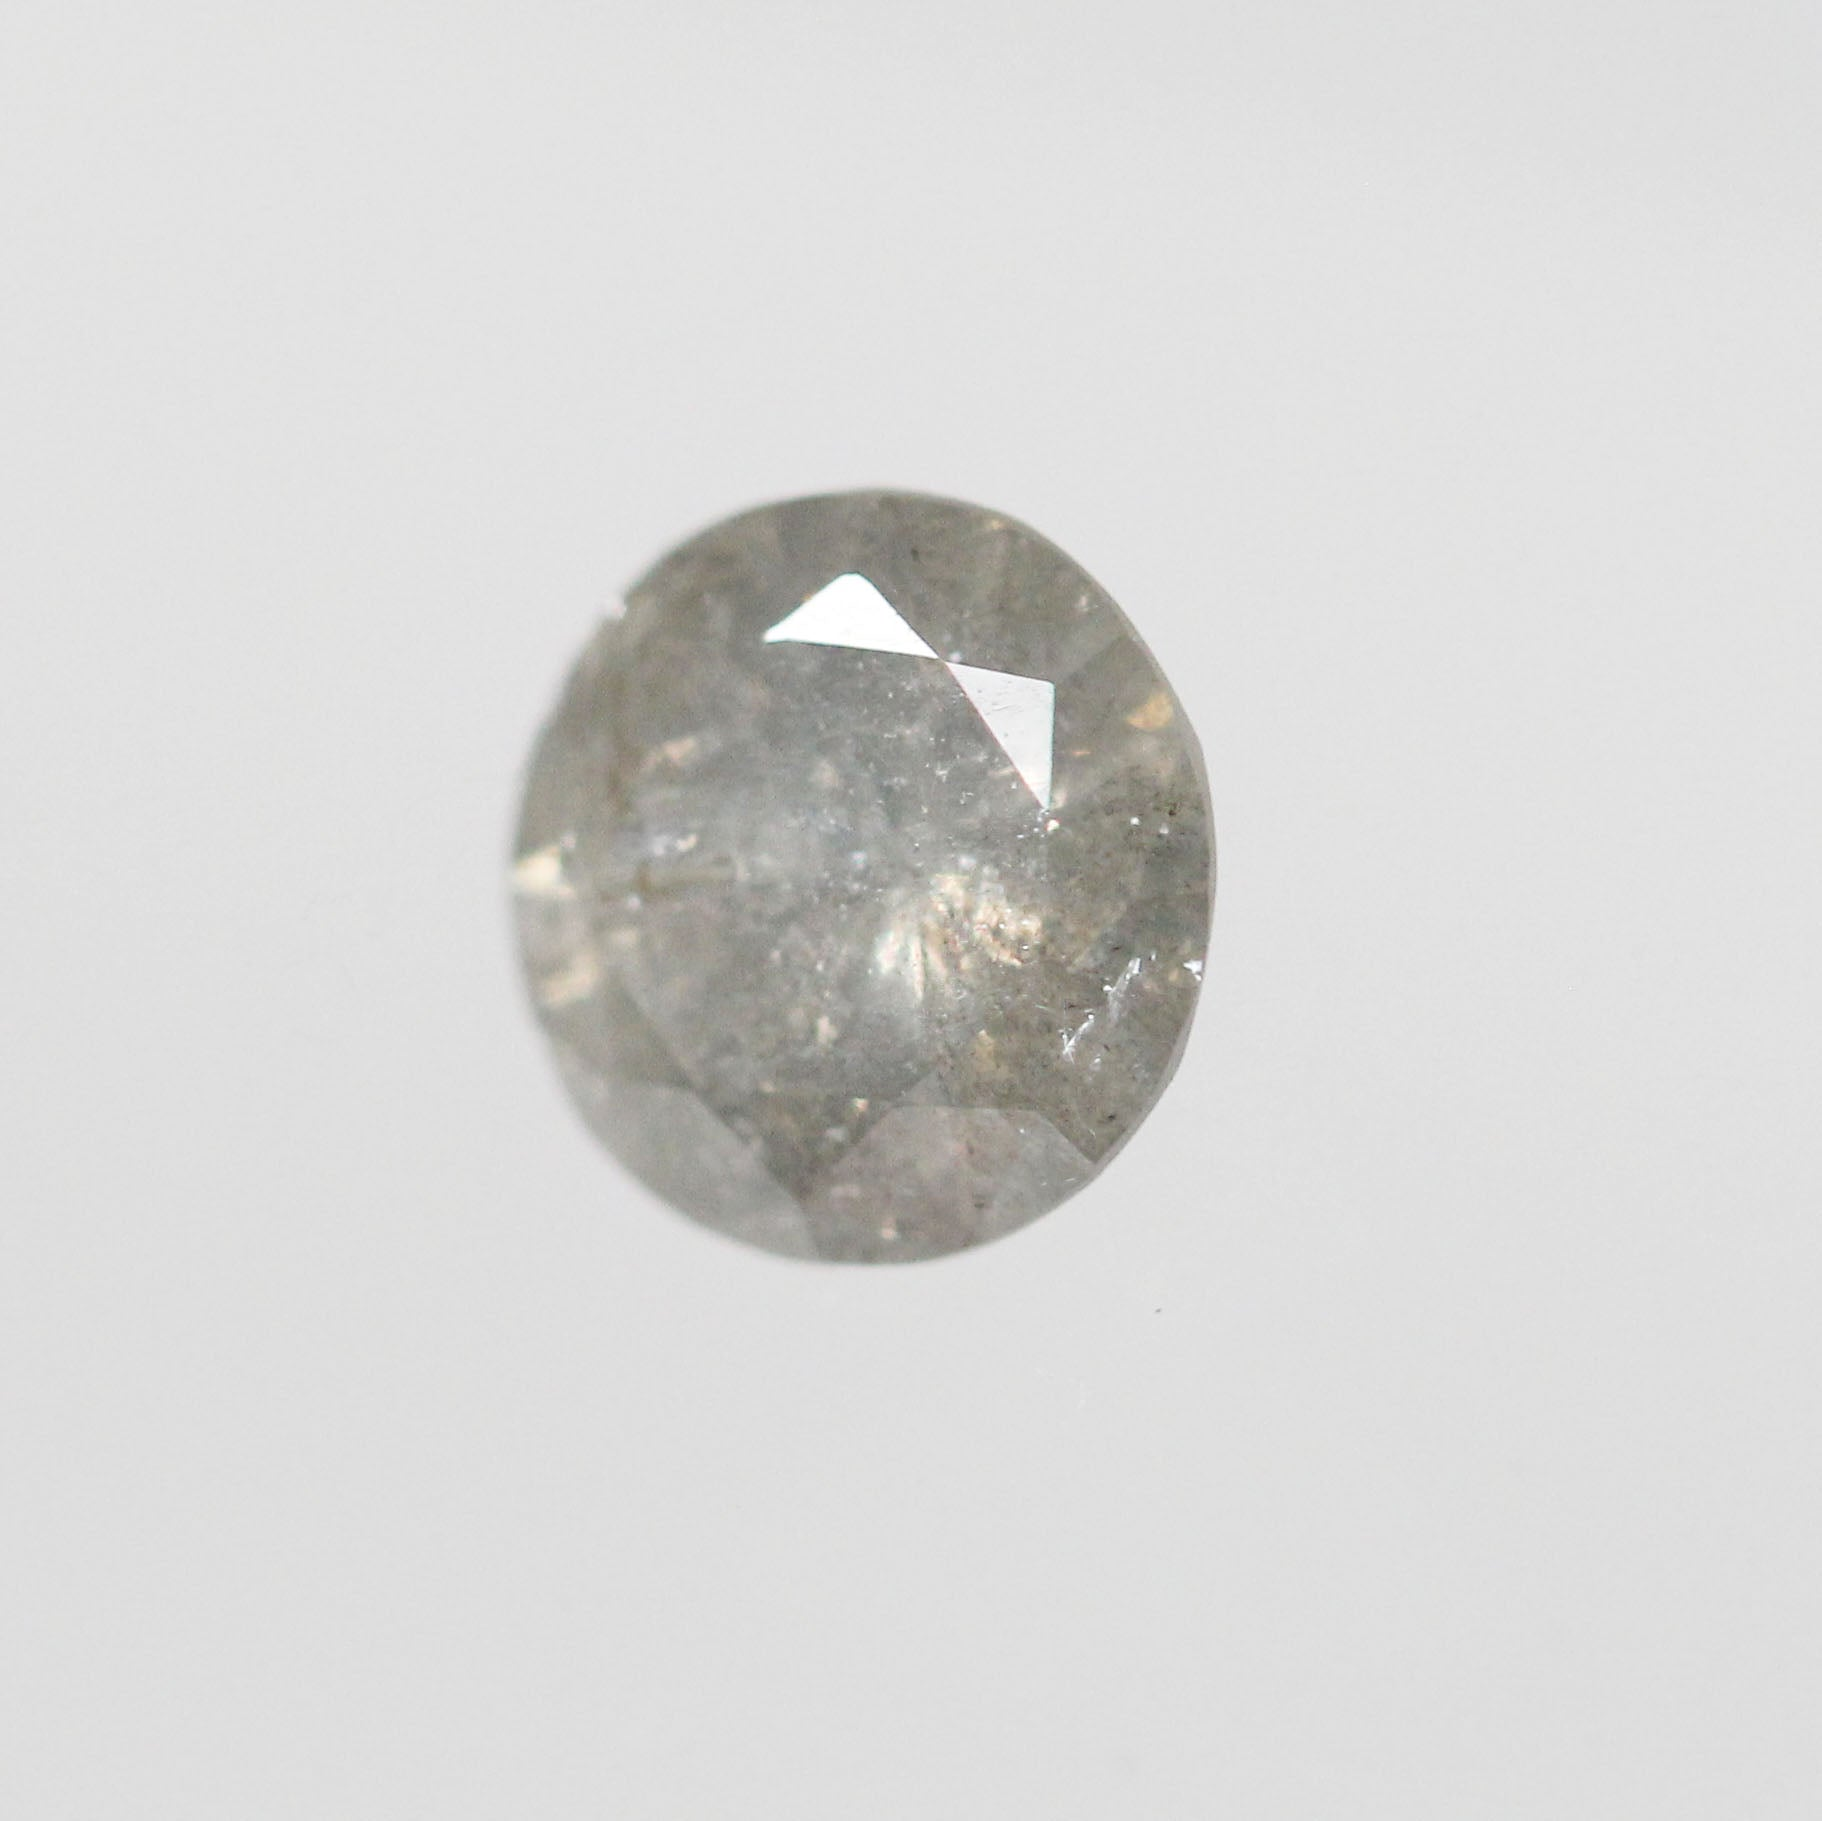 1.07 Carat Round Celestial Diamond for Custom Work - Inventory Code RBC107 - Celestial Diamonds ® by Midwinter Co.